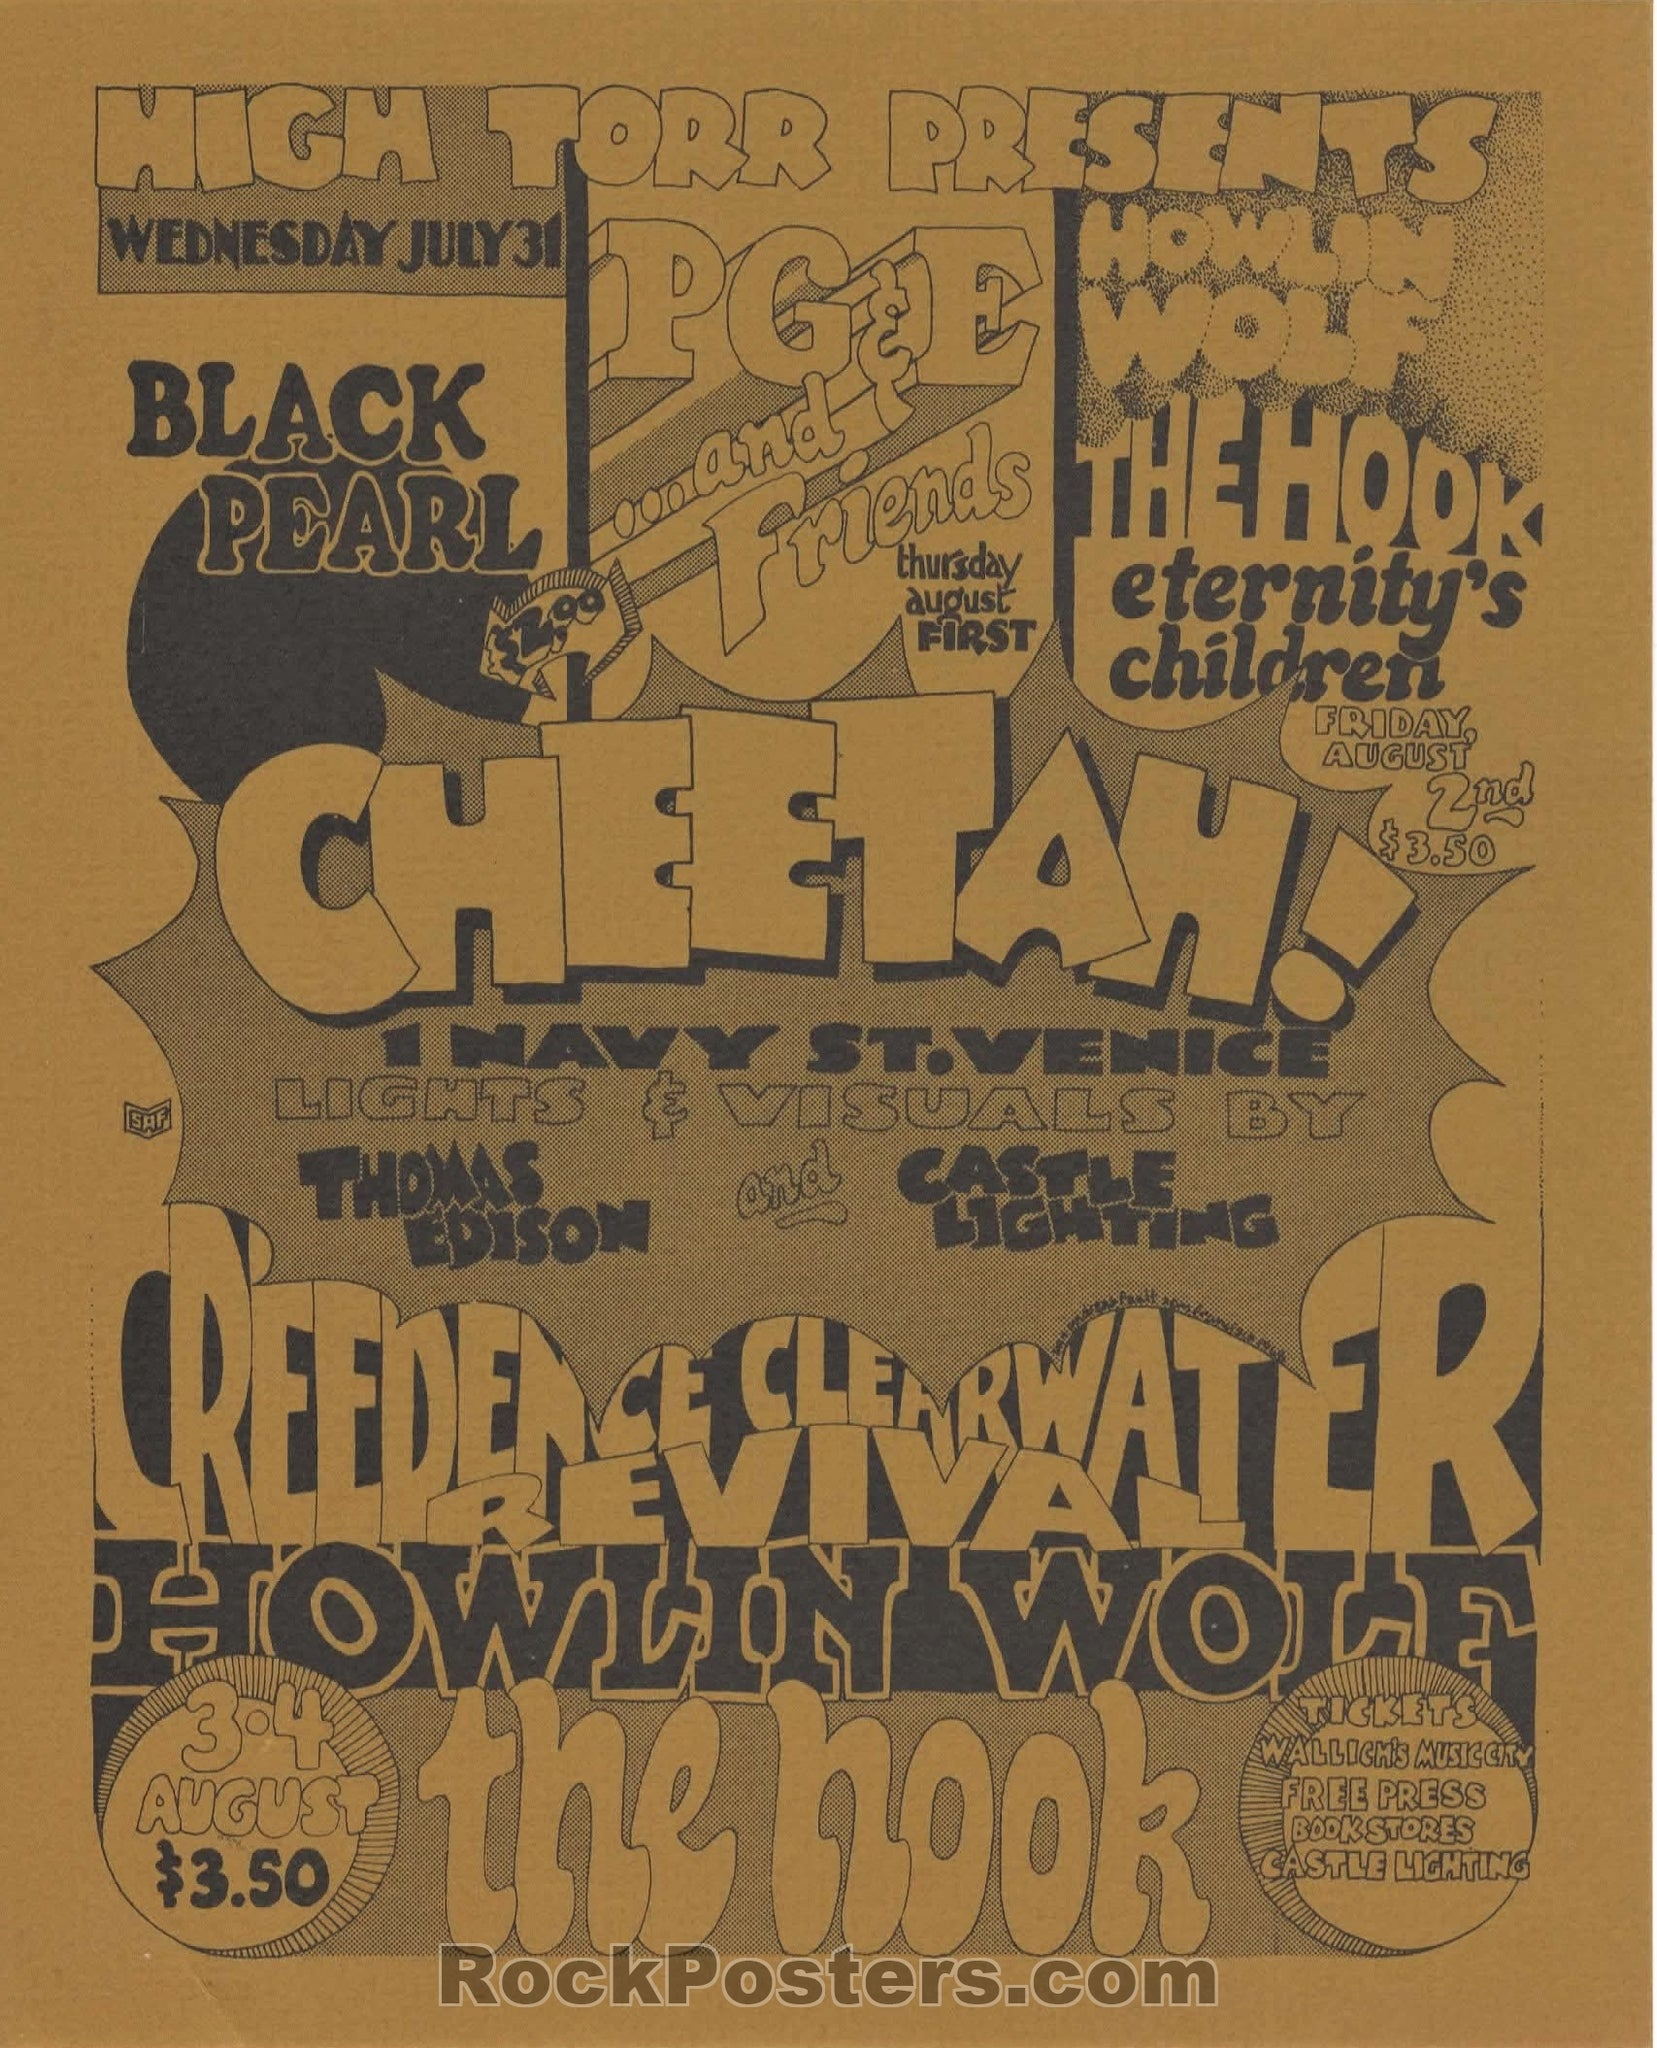 AUCTION - Creedence Clearwater - Howlin' Wolf 1968 Handbill - Cheetah Club - Condition - Near Mint